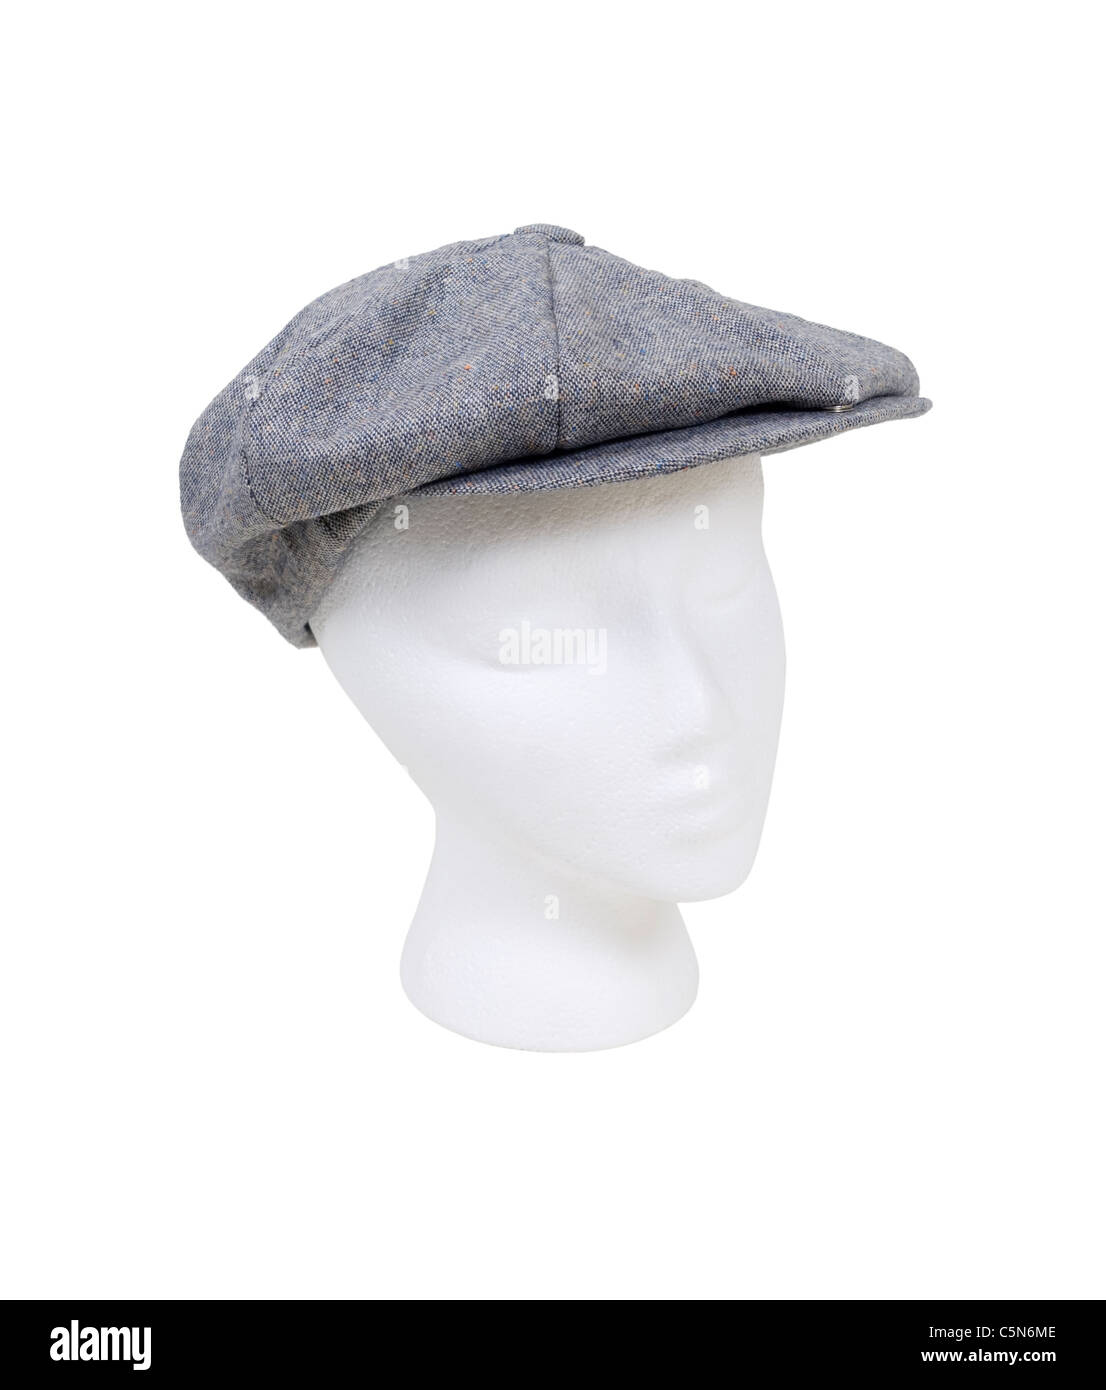 Wearing a masculine tweed flat driving cap worn on the head when out for a drive - path included - Stock Image